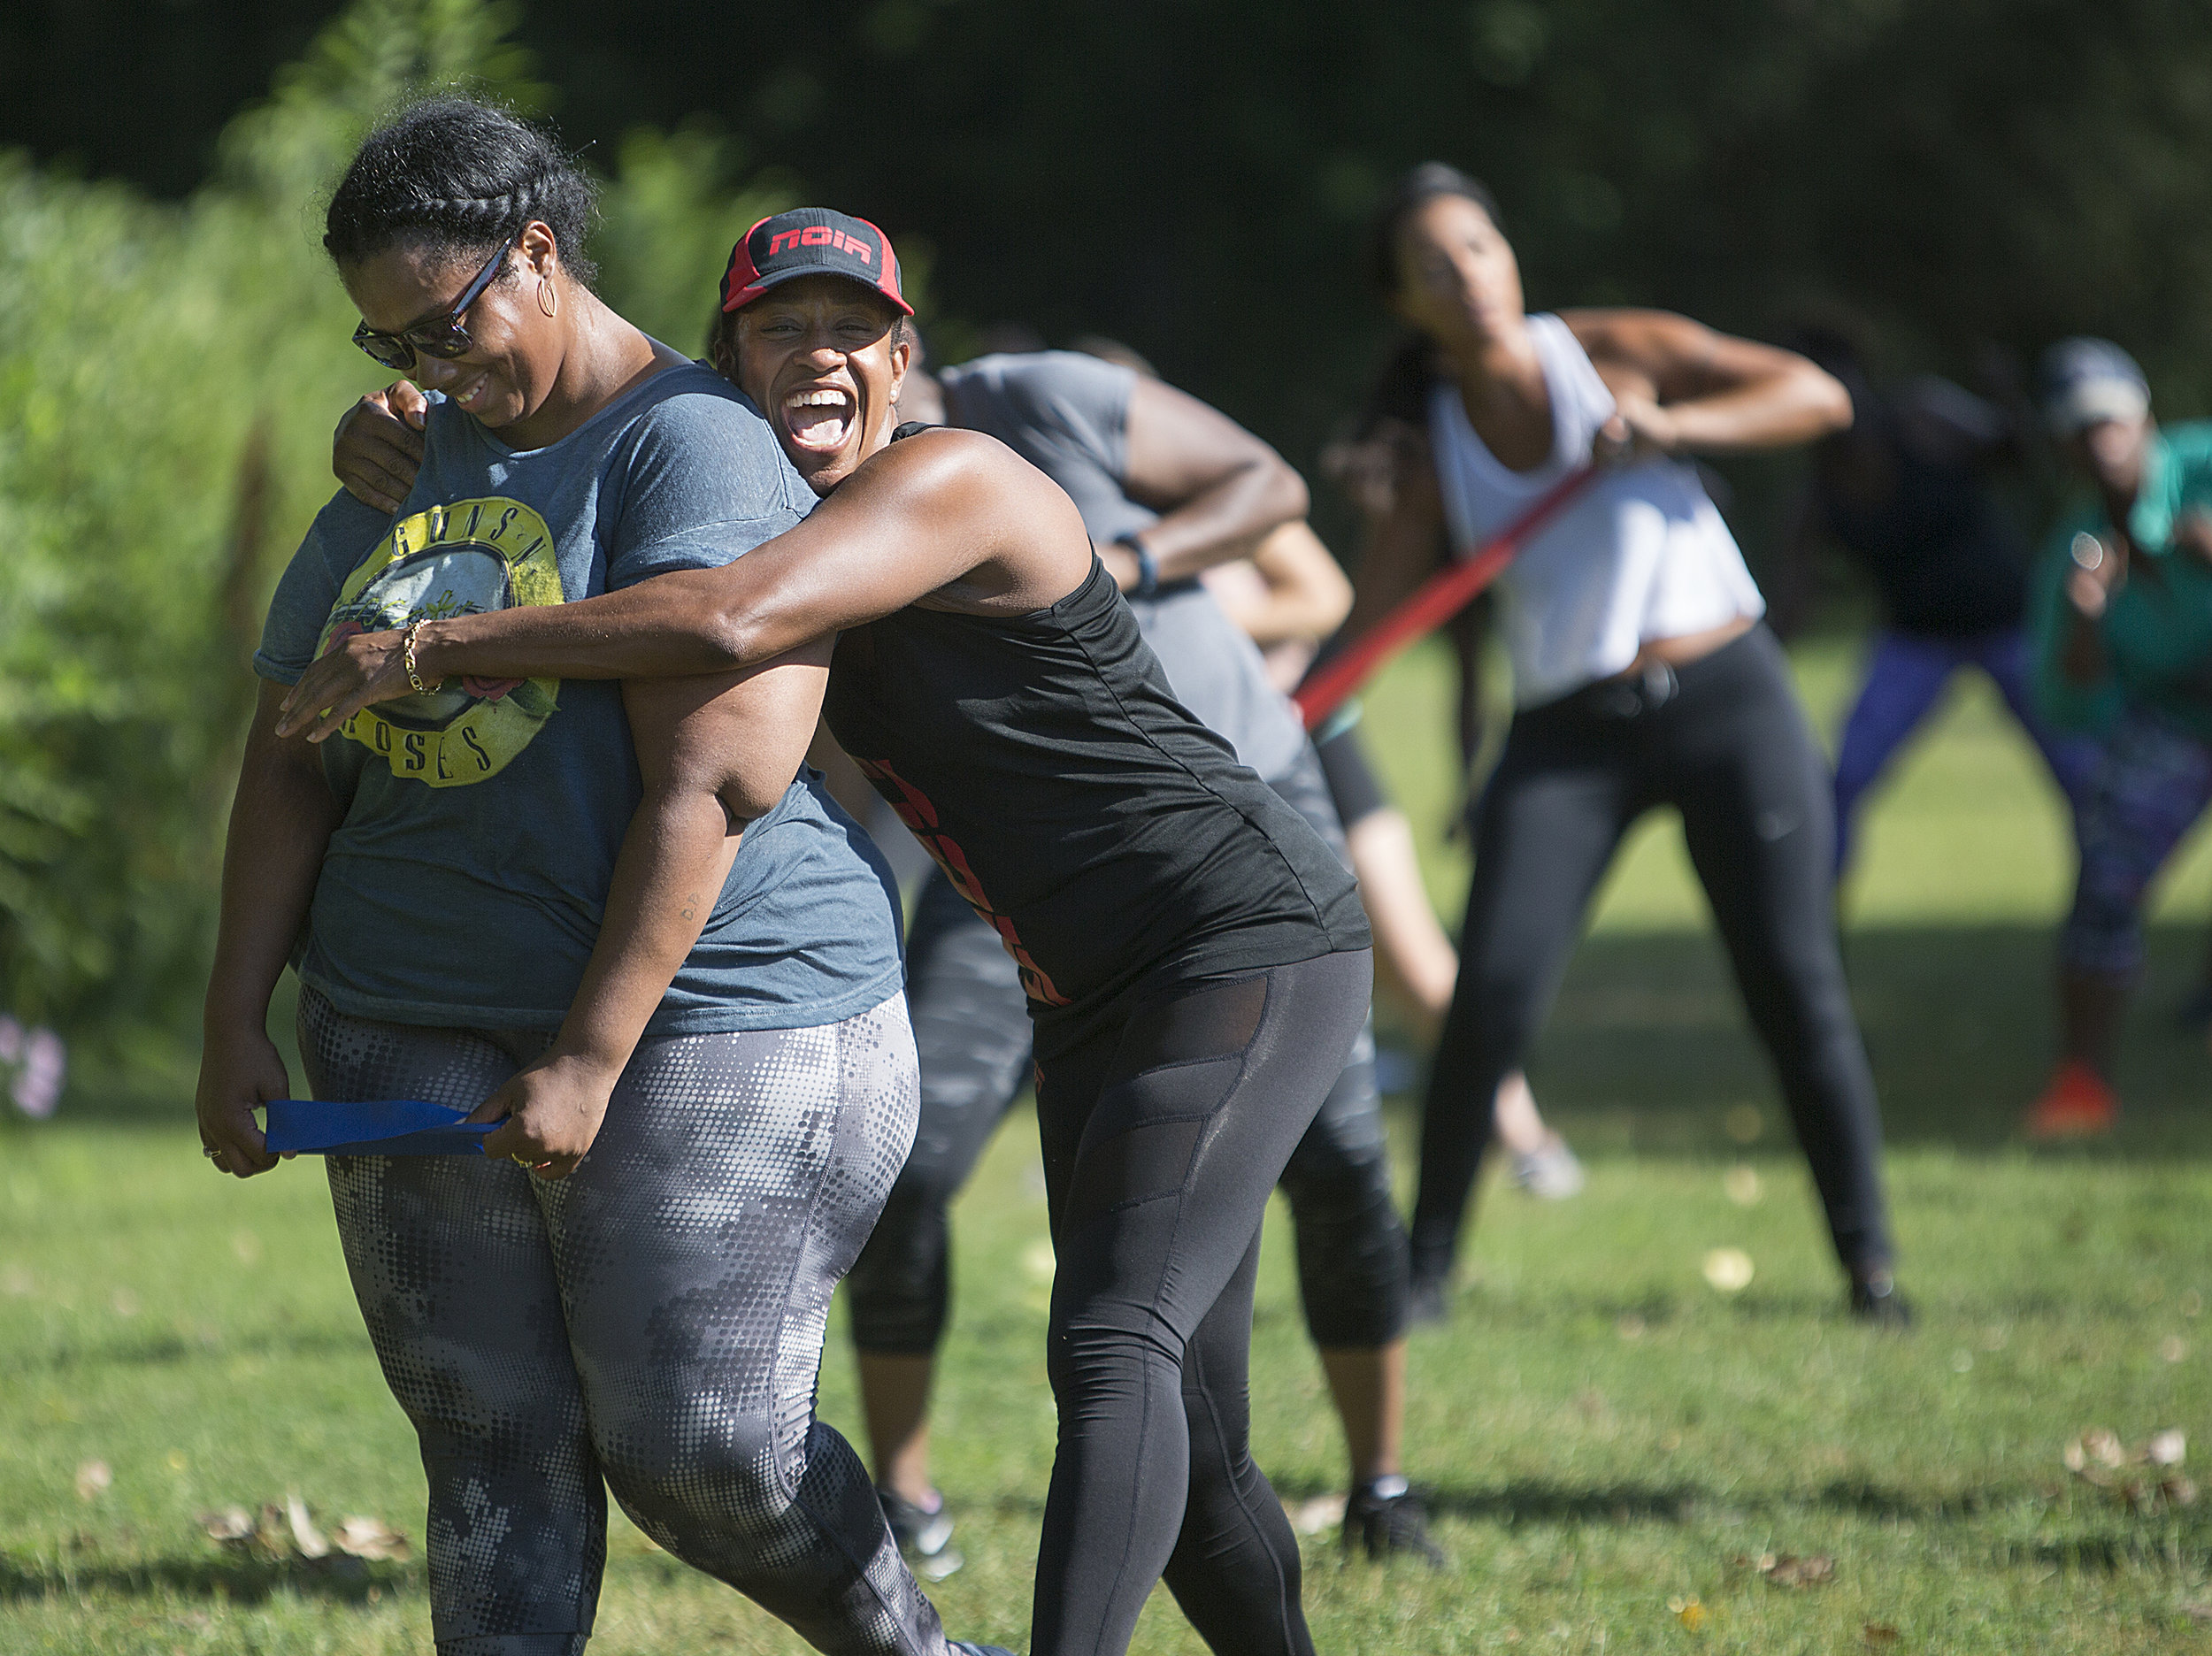 Val Fleurantin of Noir Elite Fitness hugs a class participant at her Jammin' in the Parks pop-up fitness event in July. Fleurantin and her business partner Chaz Sandifer seek to support black women to live healthier lives. In 2018 they plan to open their own gym at North High School.